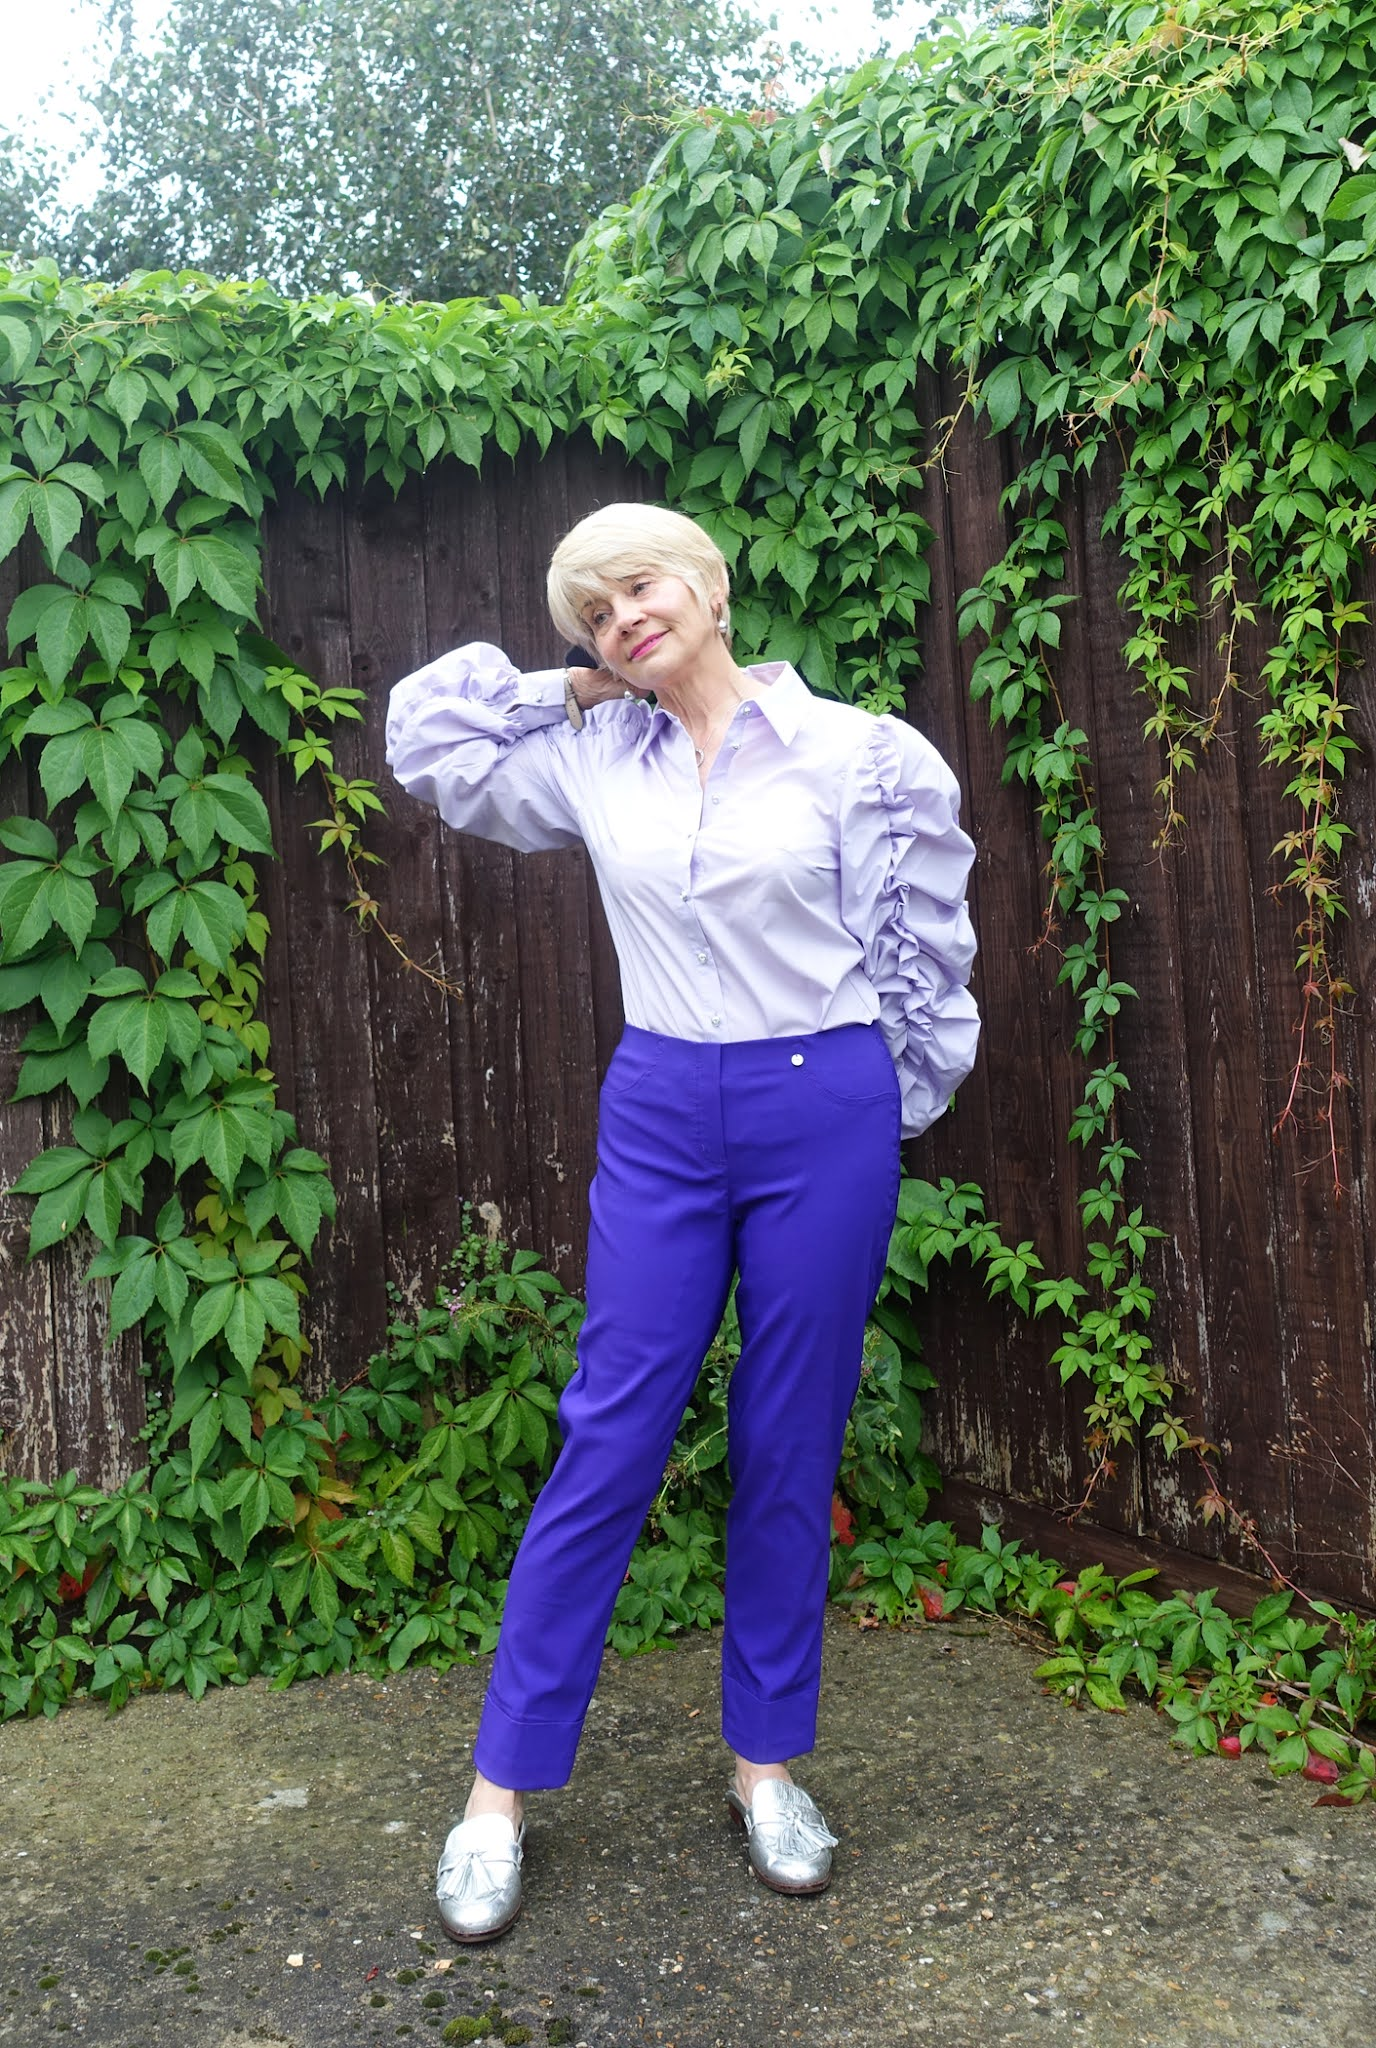 Wearing statement sleeves: Gail Hanlon from Is This Mutton in lilac blouse and purple trousers